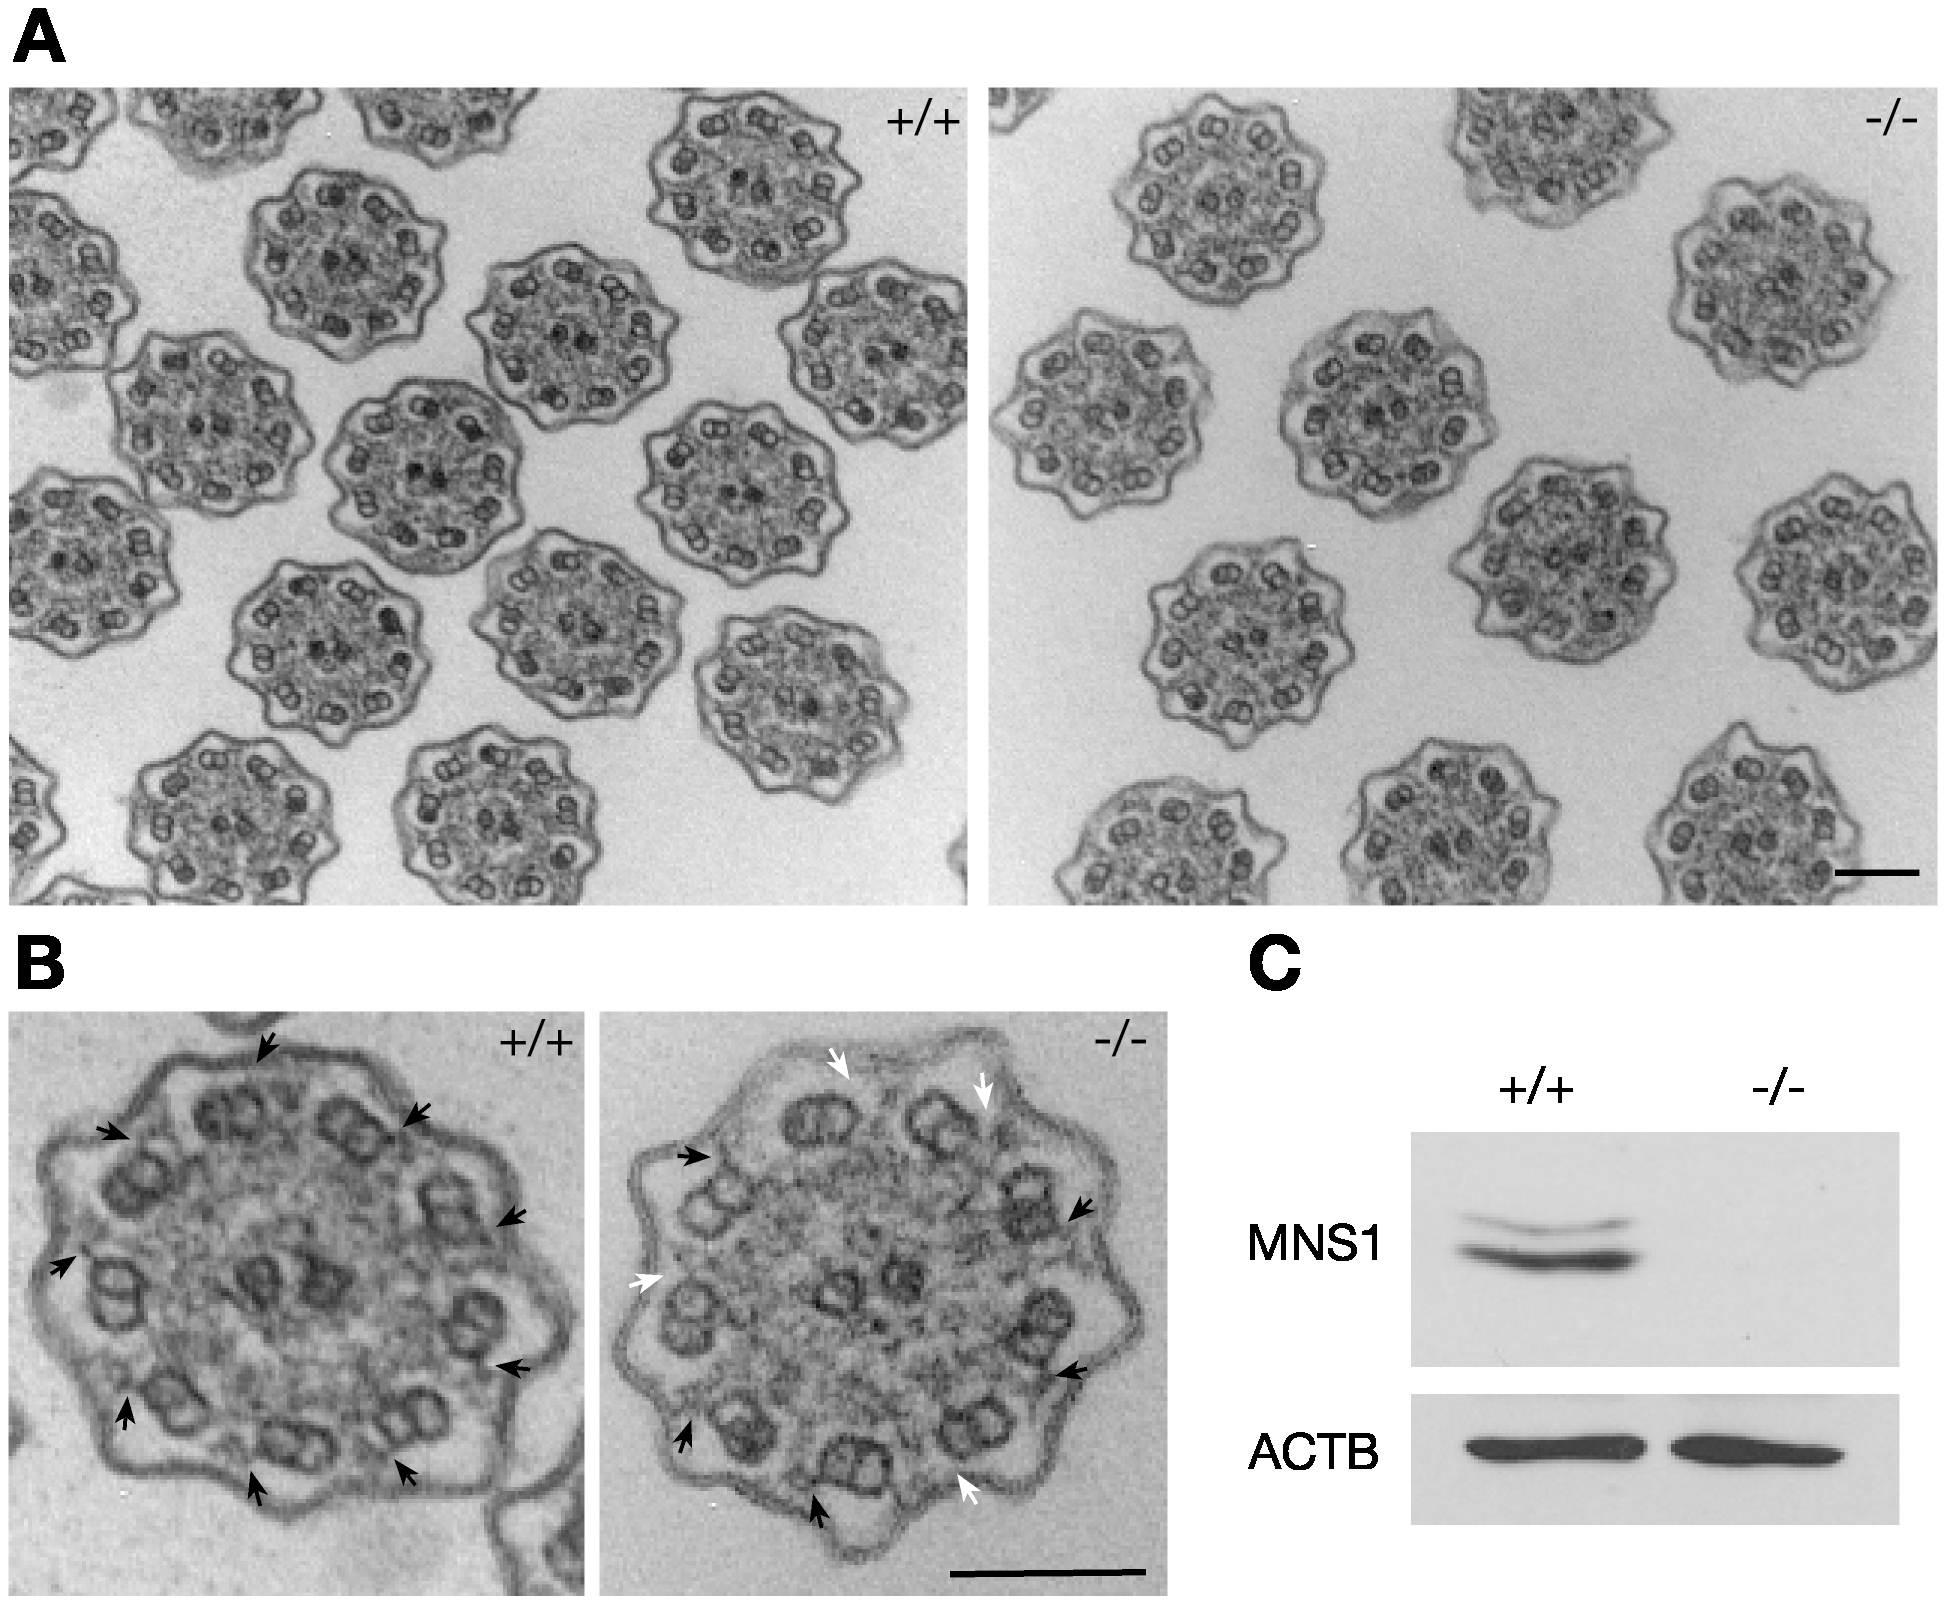 Defects in outer dynein arms in <i>Mns1</i>-deficient tracheal cilia.